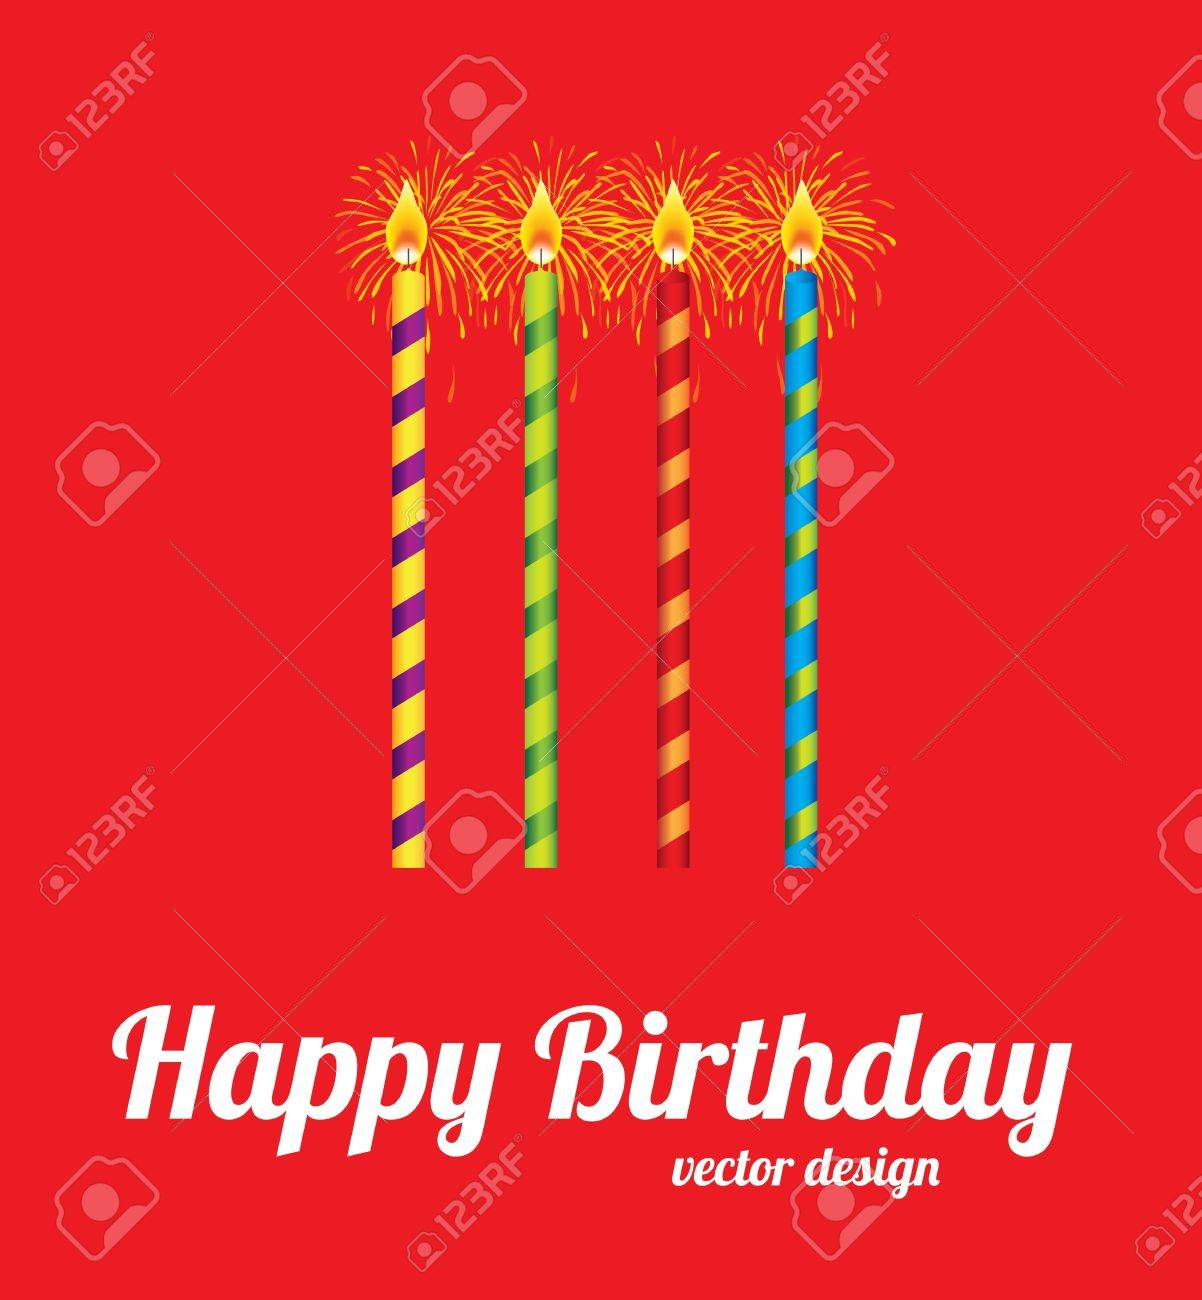 Happy Birthday Card Over Red Background Vector Illustration Royalty Free Cliparts Vectors And Stock Illustration Image 20499646